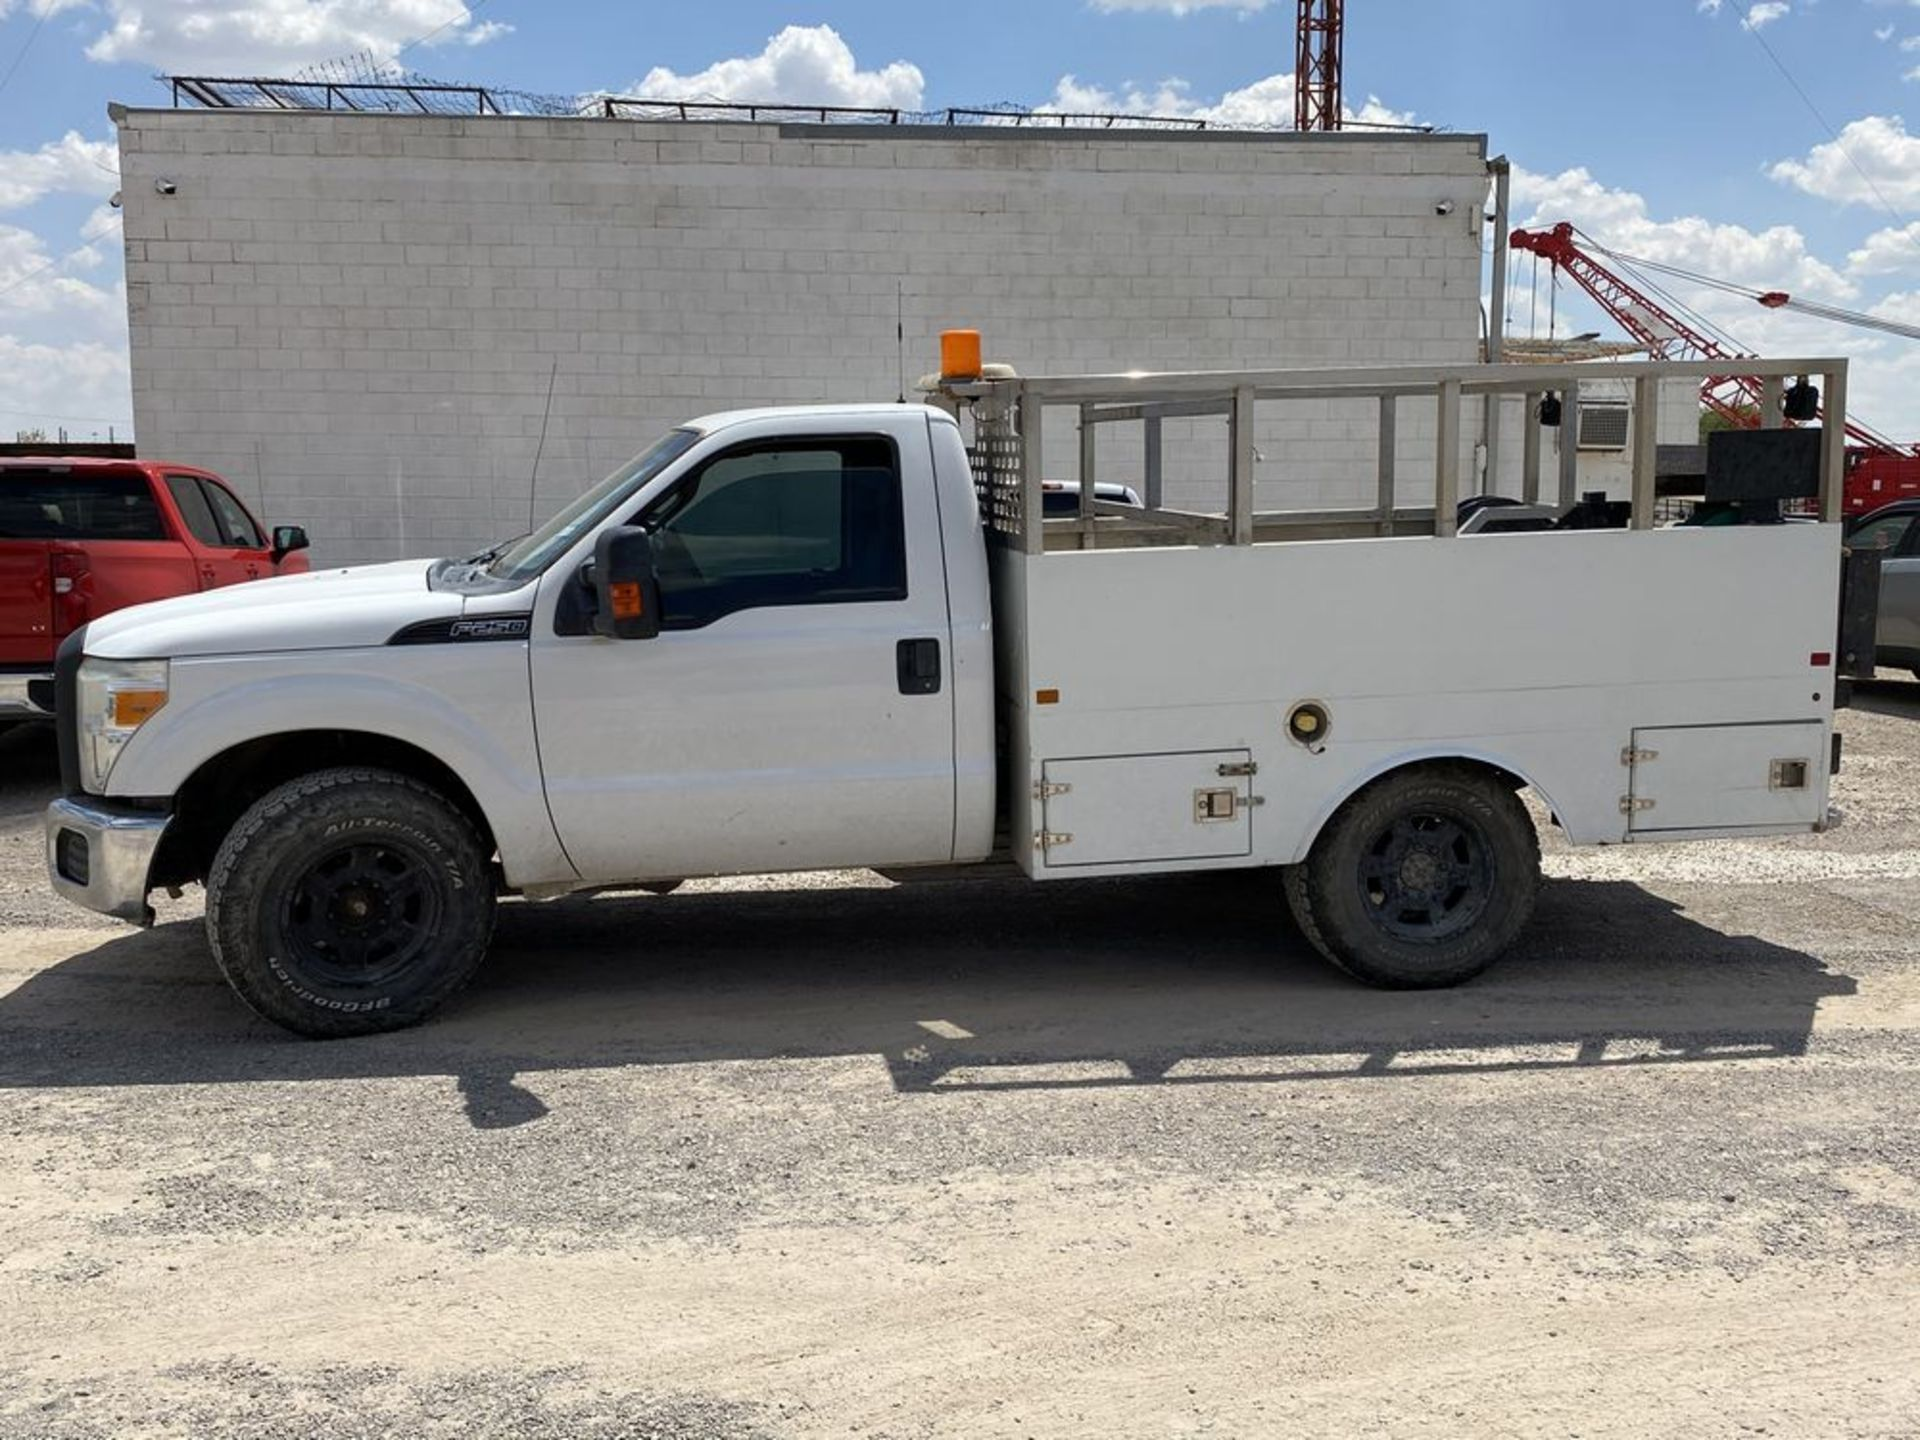 2012 Ford F-250 Super Duty - Image 15 of 20